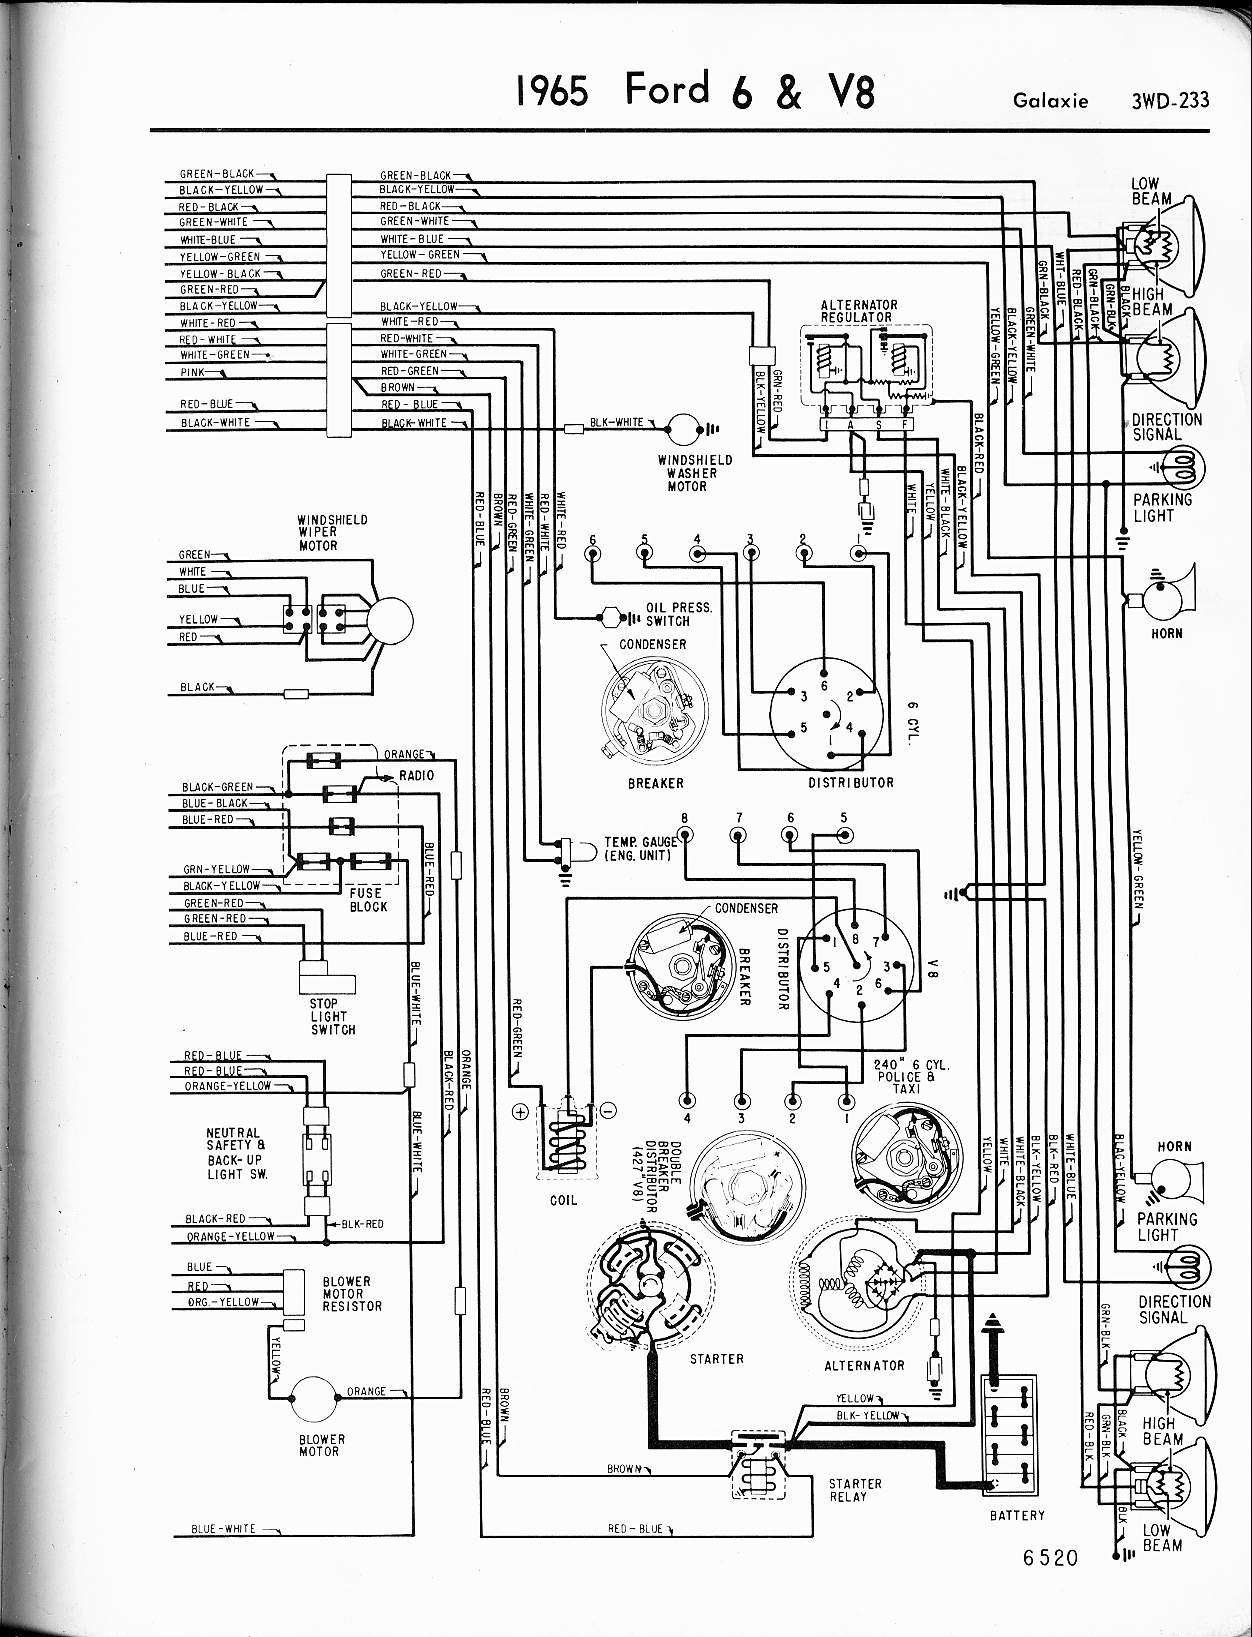 MWire5765 233 57 65 ford wiring diagrams 1990 ford f250 wiring diagram at readyjetset.co